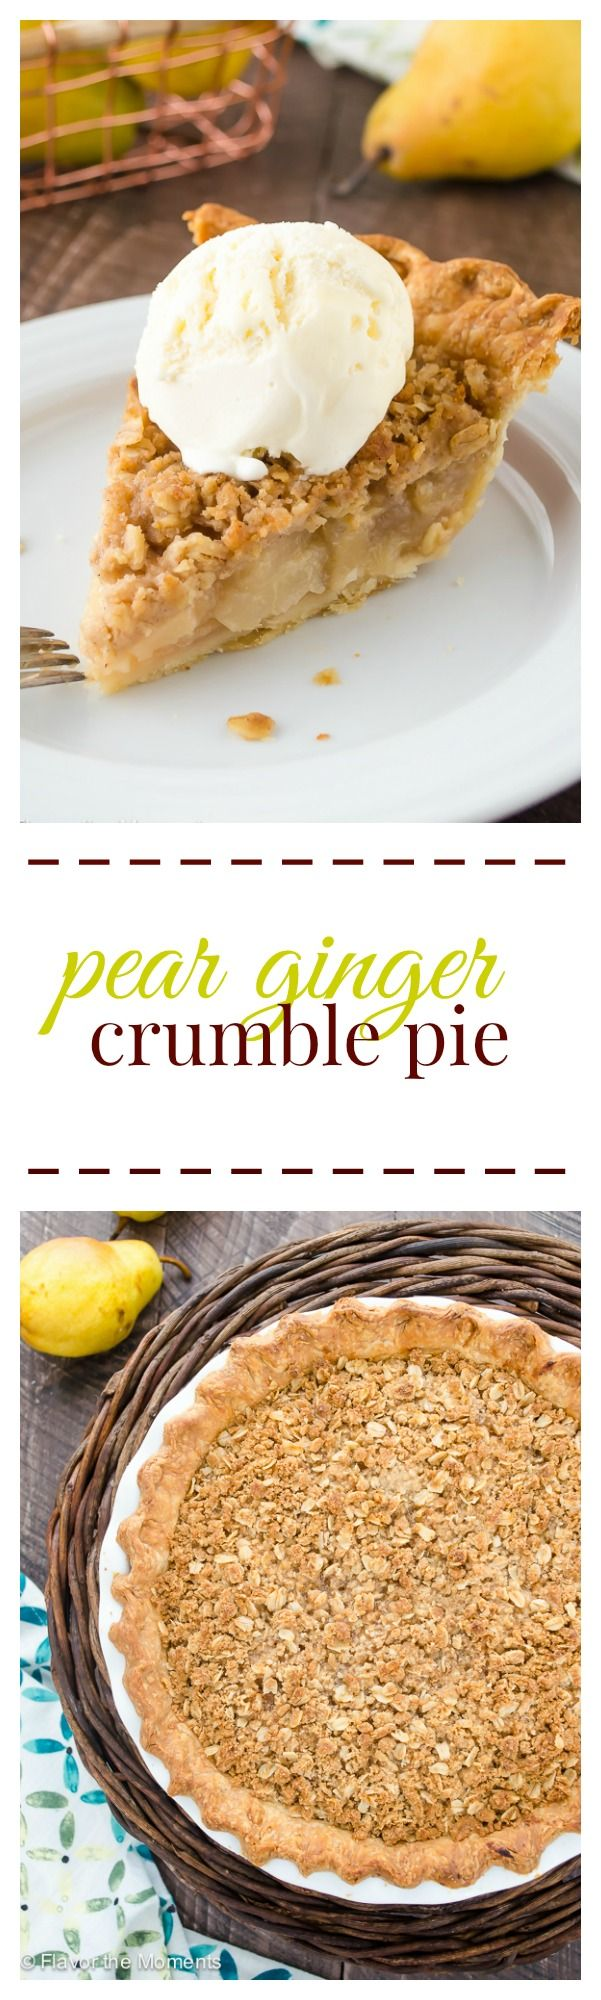 Pear Ginger Crumble Pie Collage   flavorthemoments.com